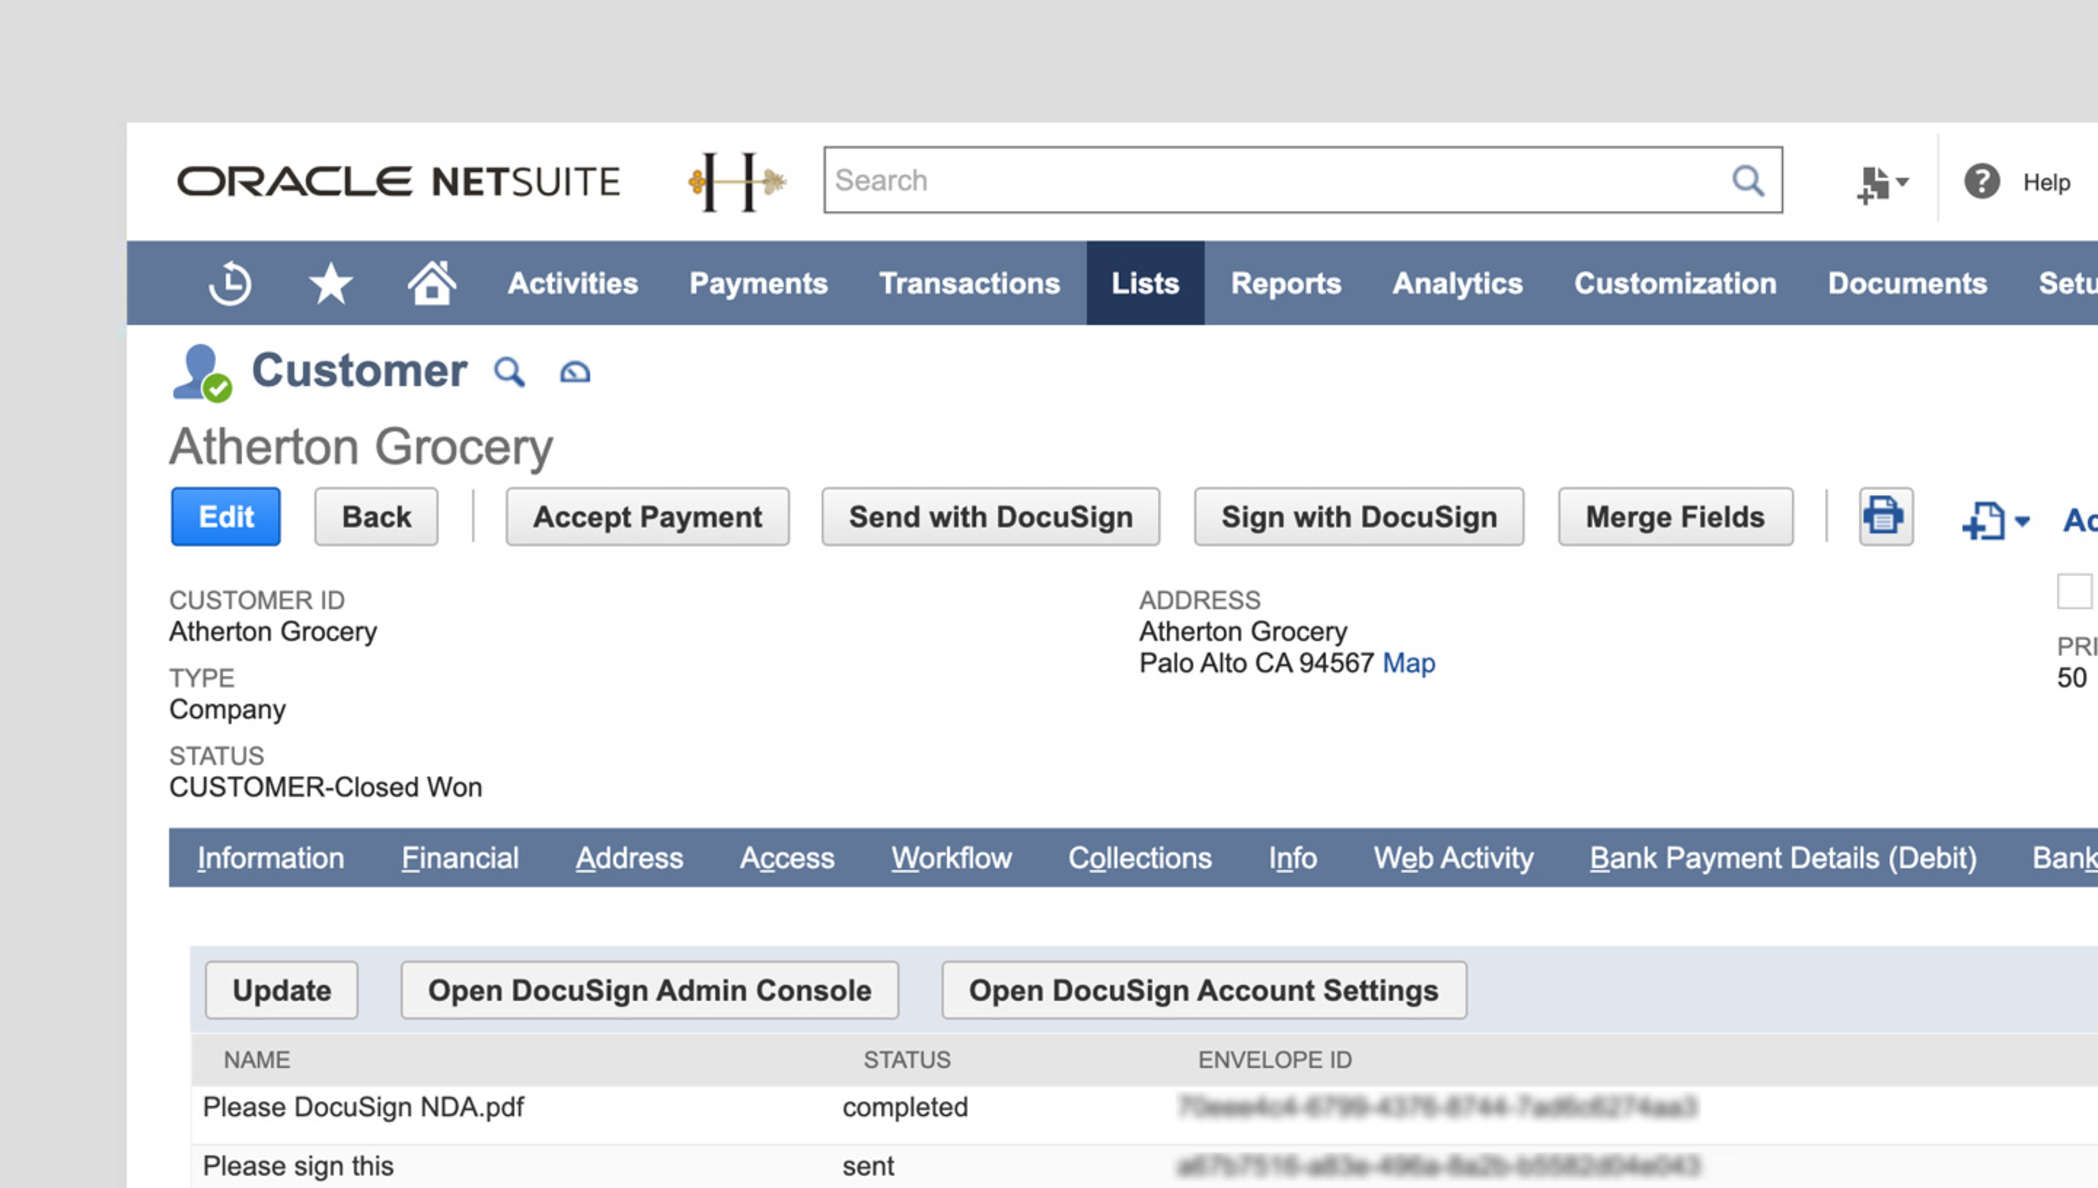 Desktop view of the eSignature for NetSuite application, showing a customer record with a custom button